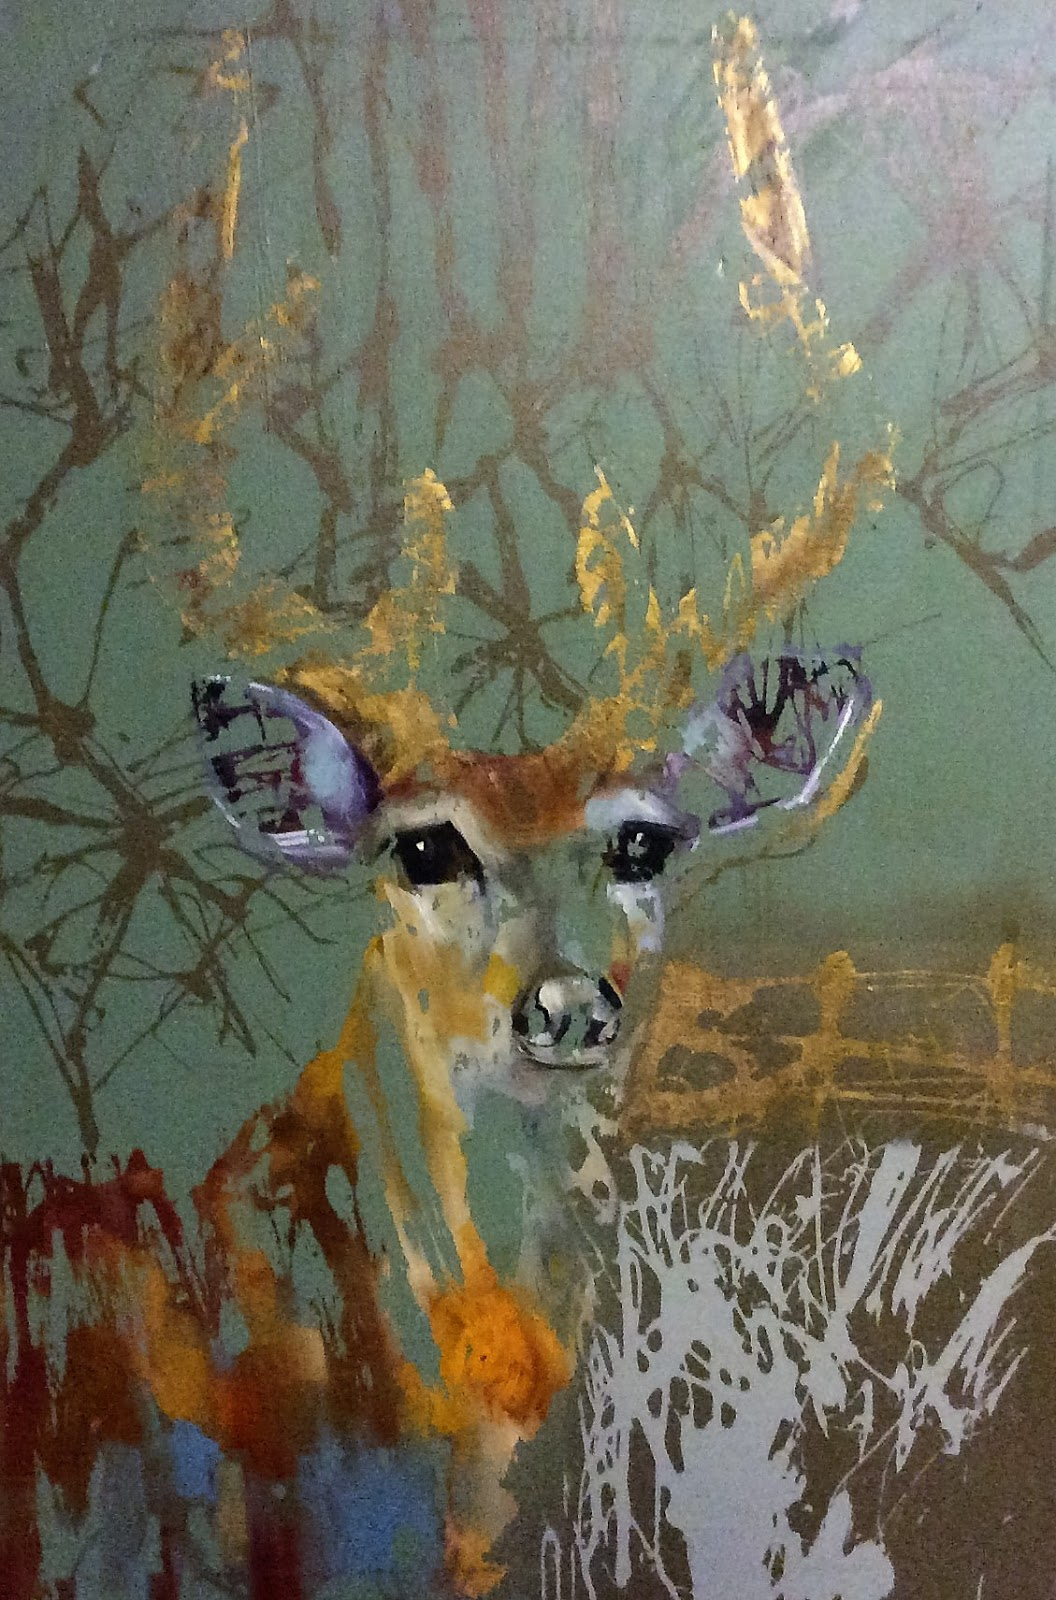 Daily Painters Abstract Gallery: Contemporary Wildlife Oil ...